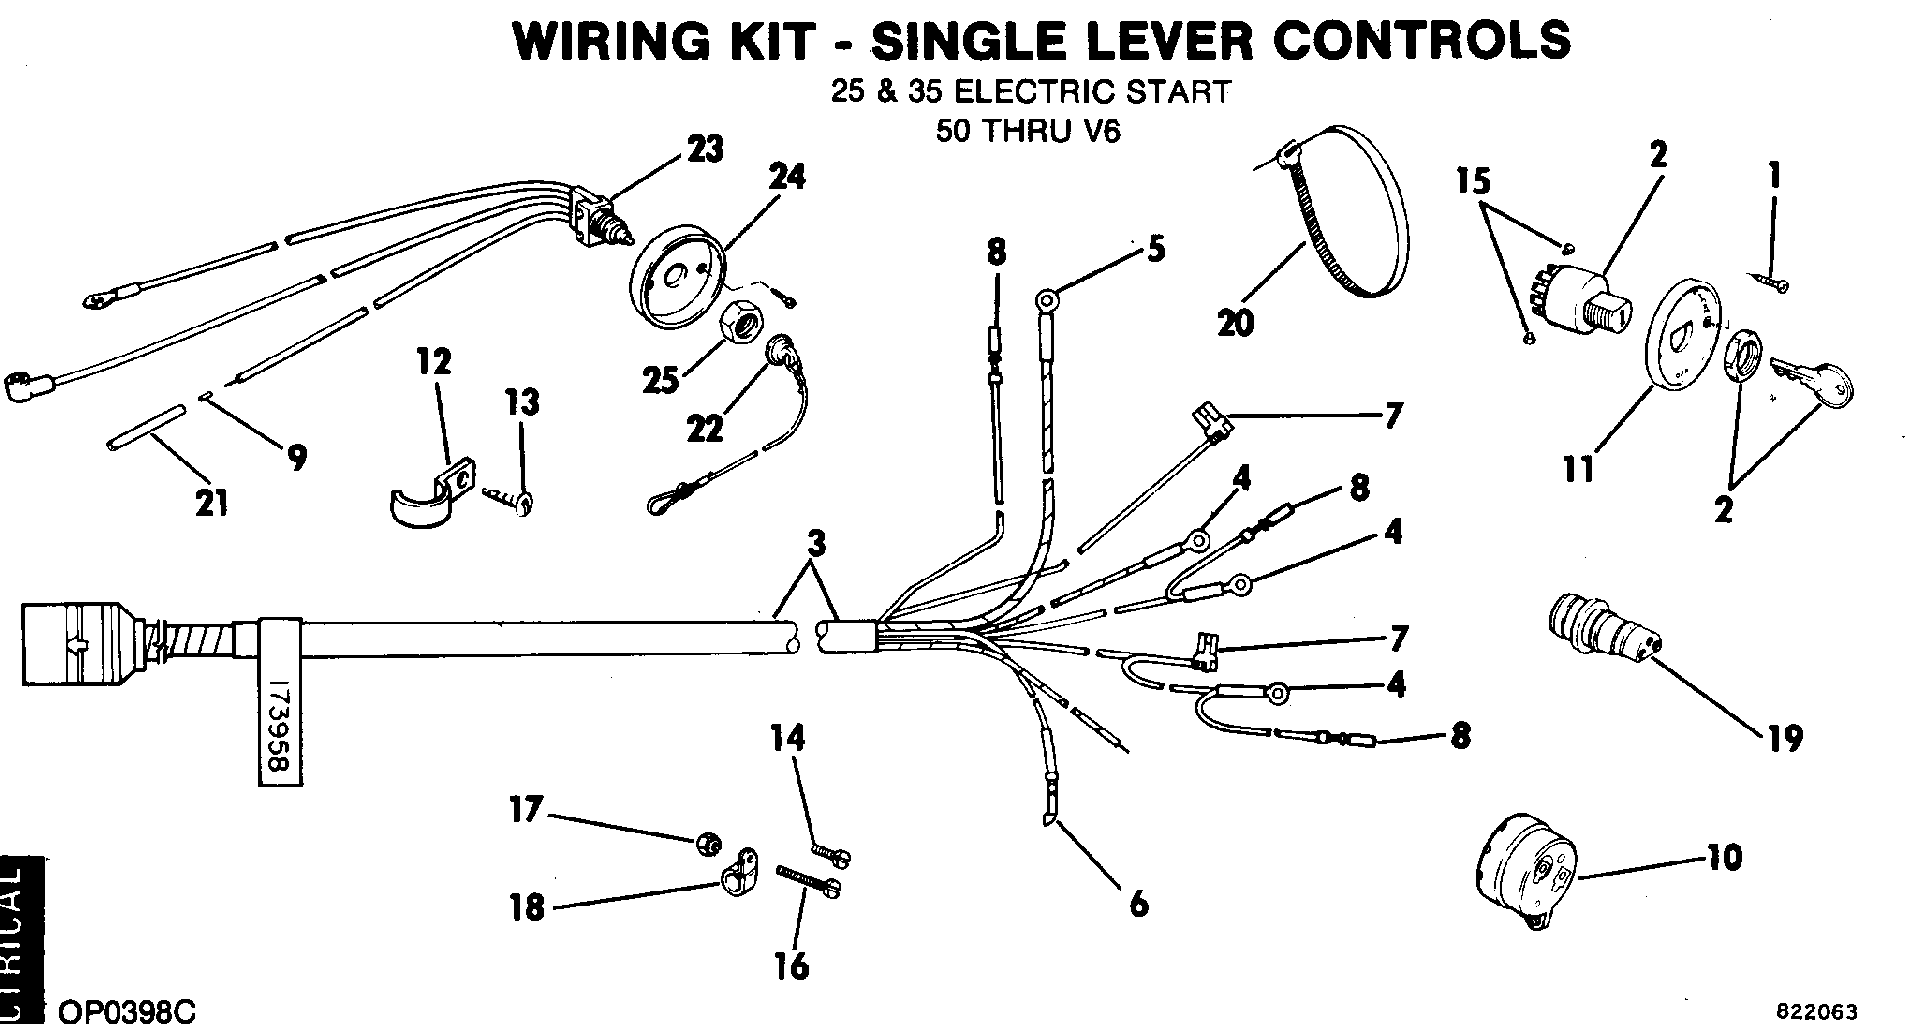 Guitar Wiring Kits